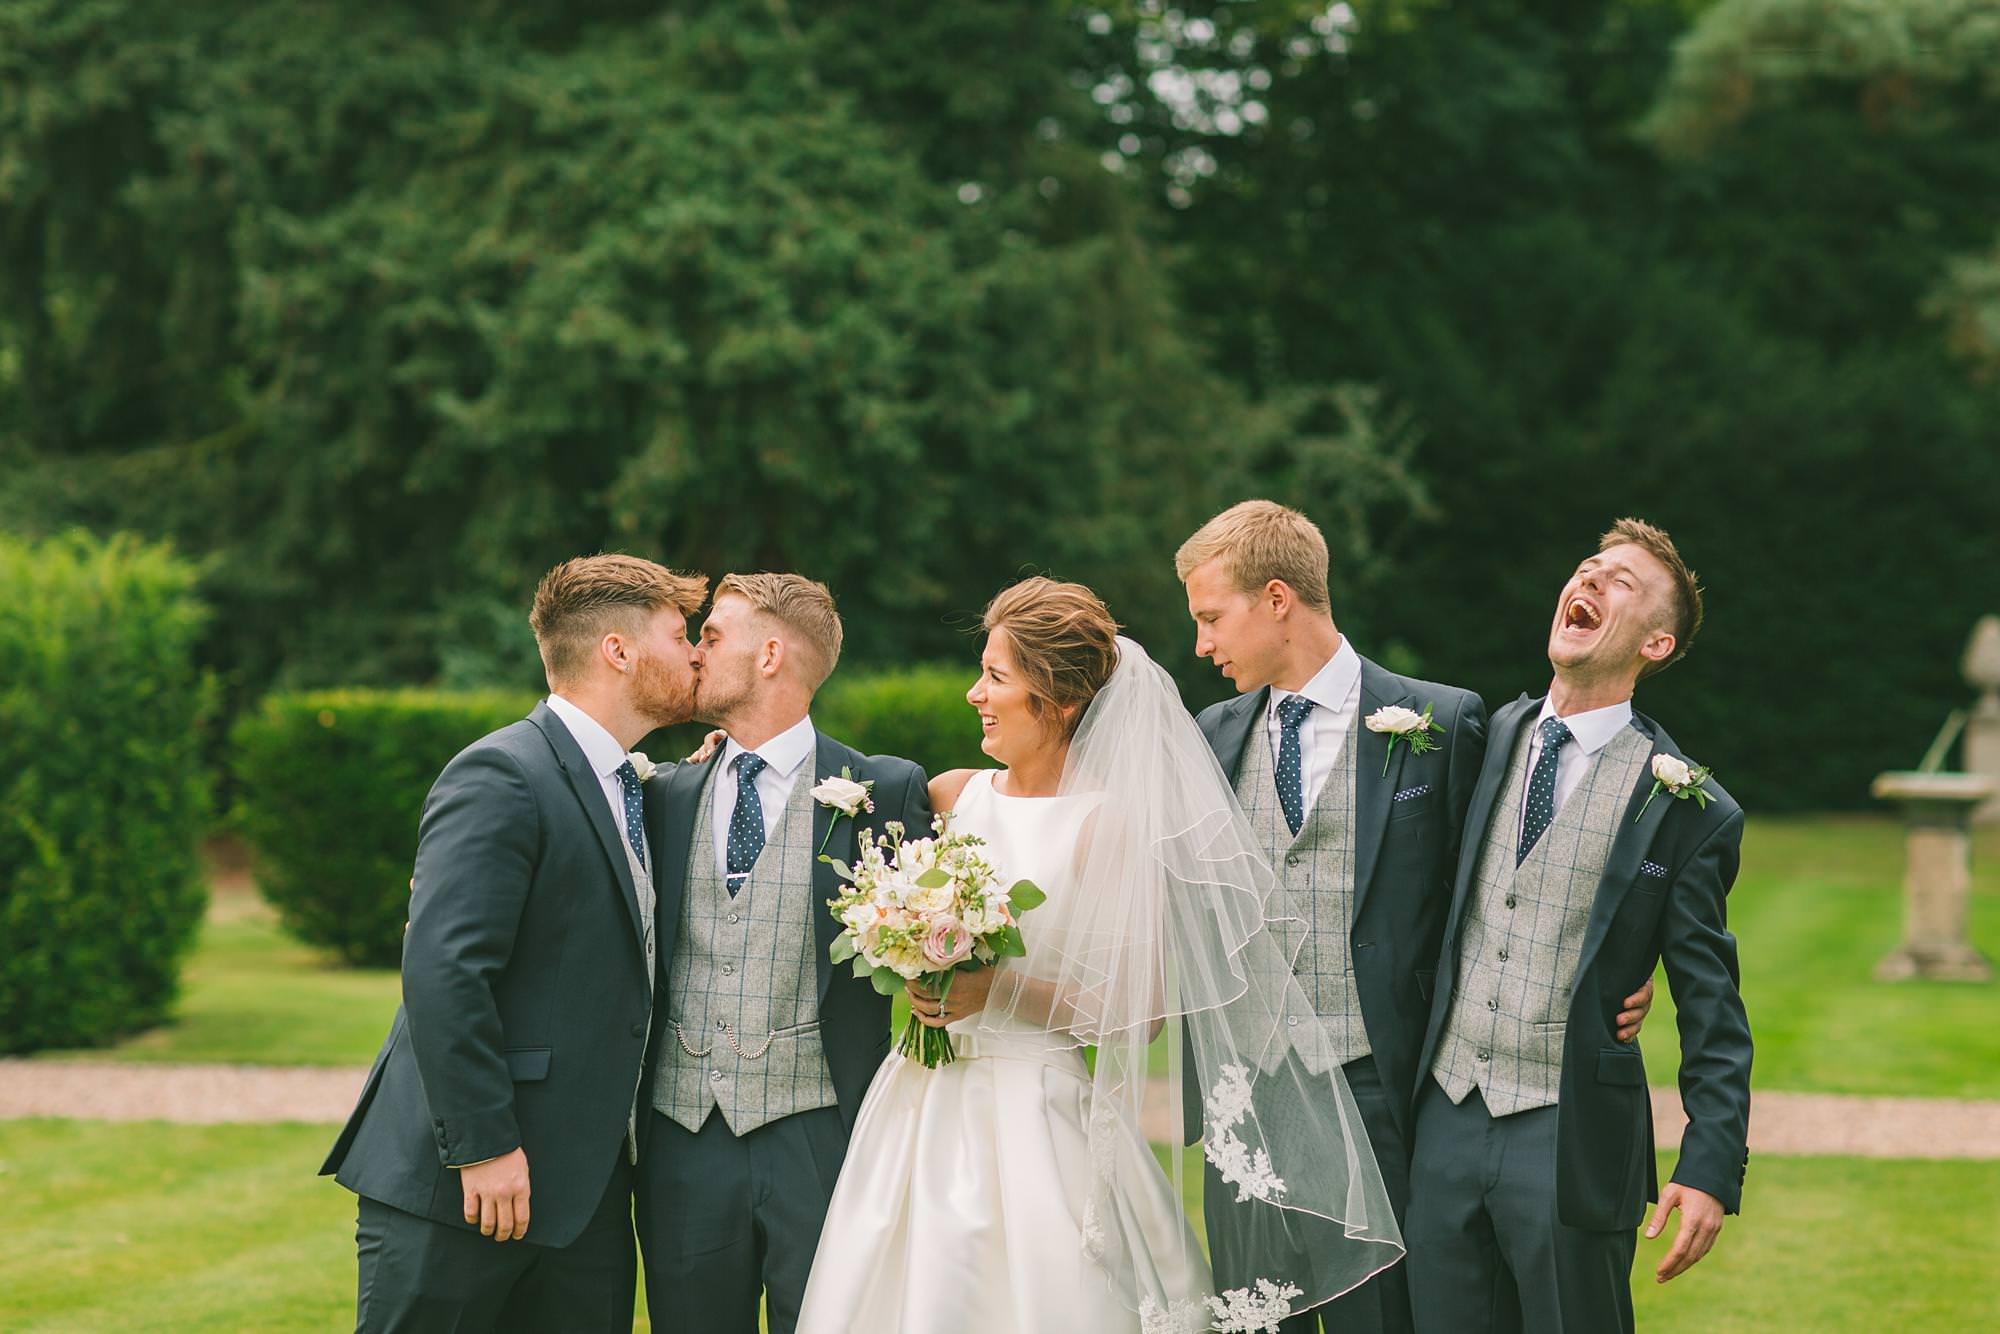 shropshire wedding and portrait photographer captures images of wedding party at Iscoyd park